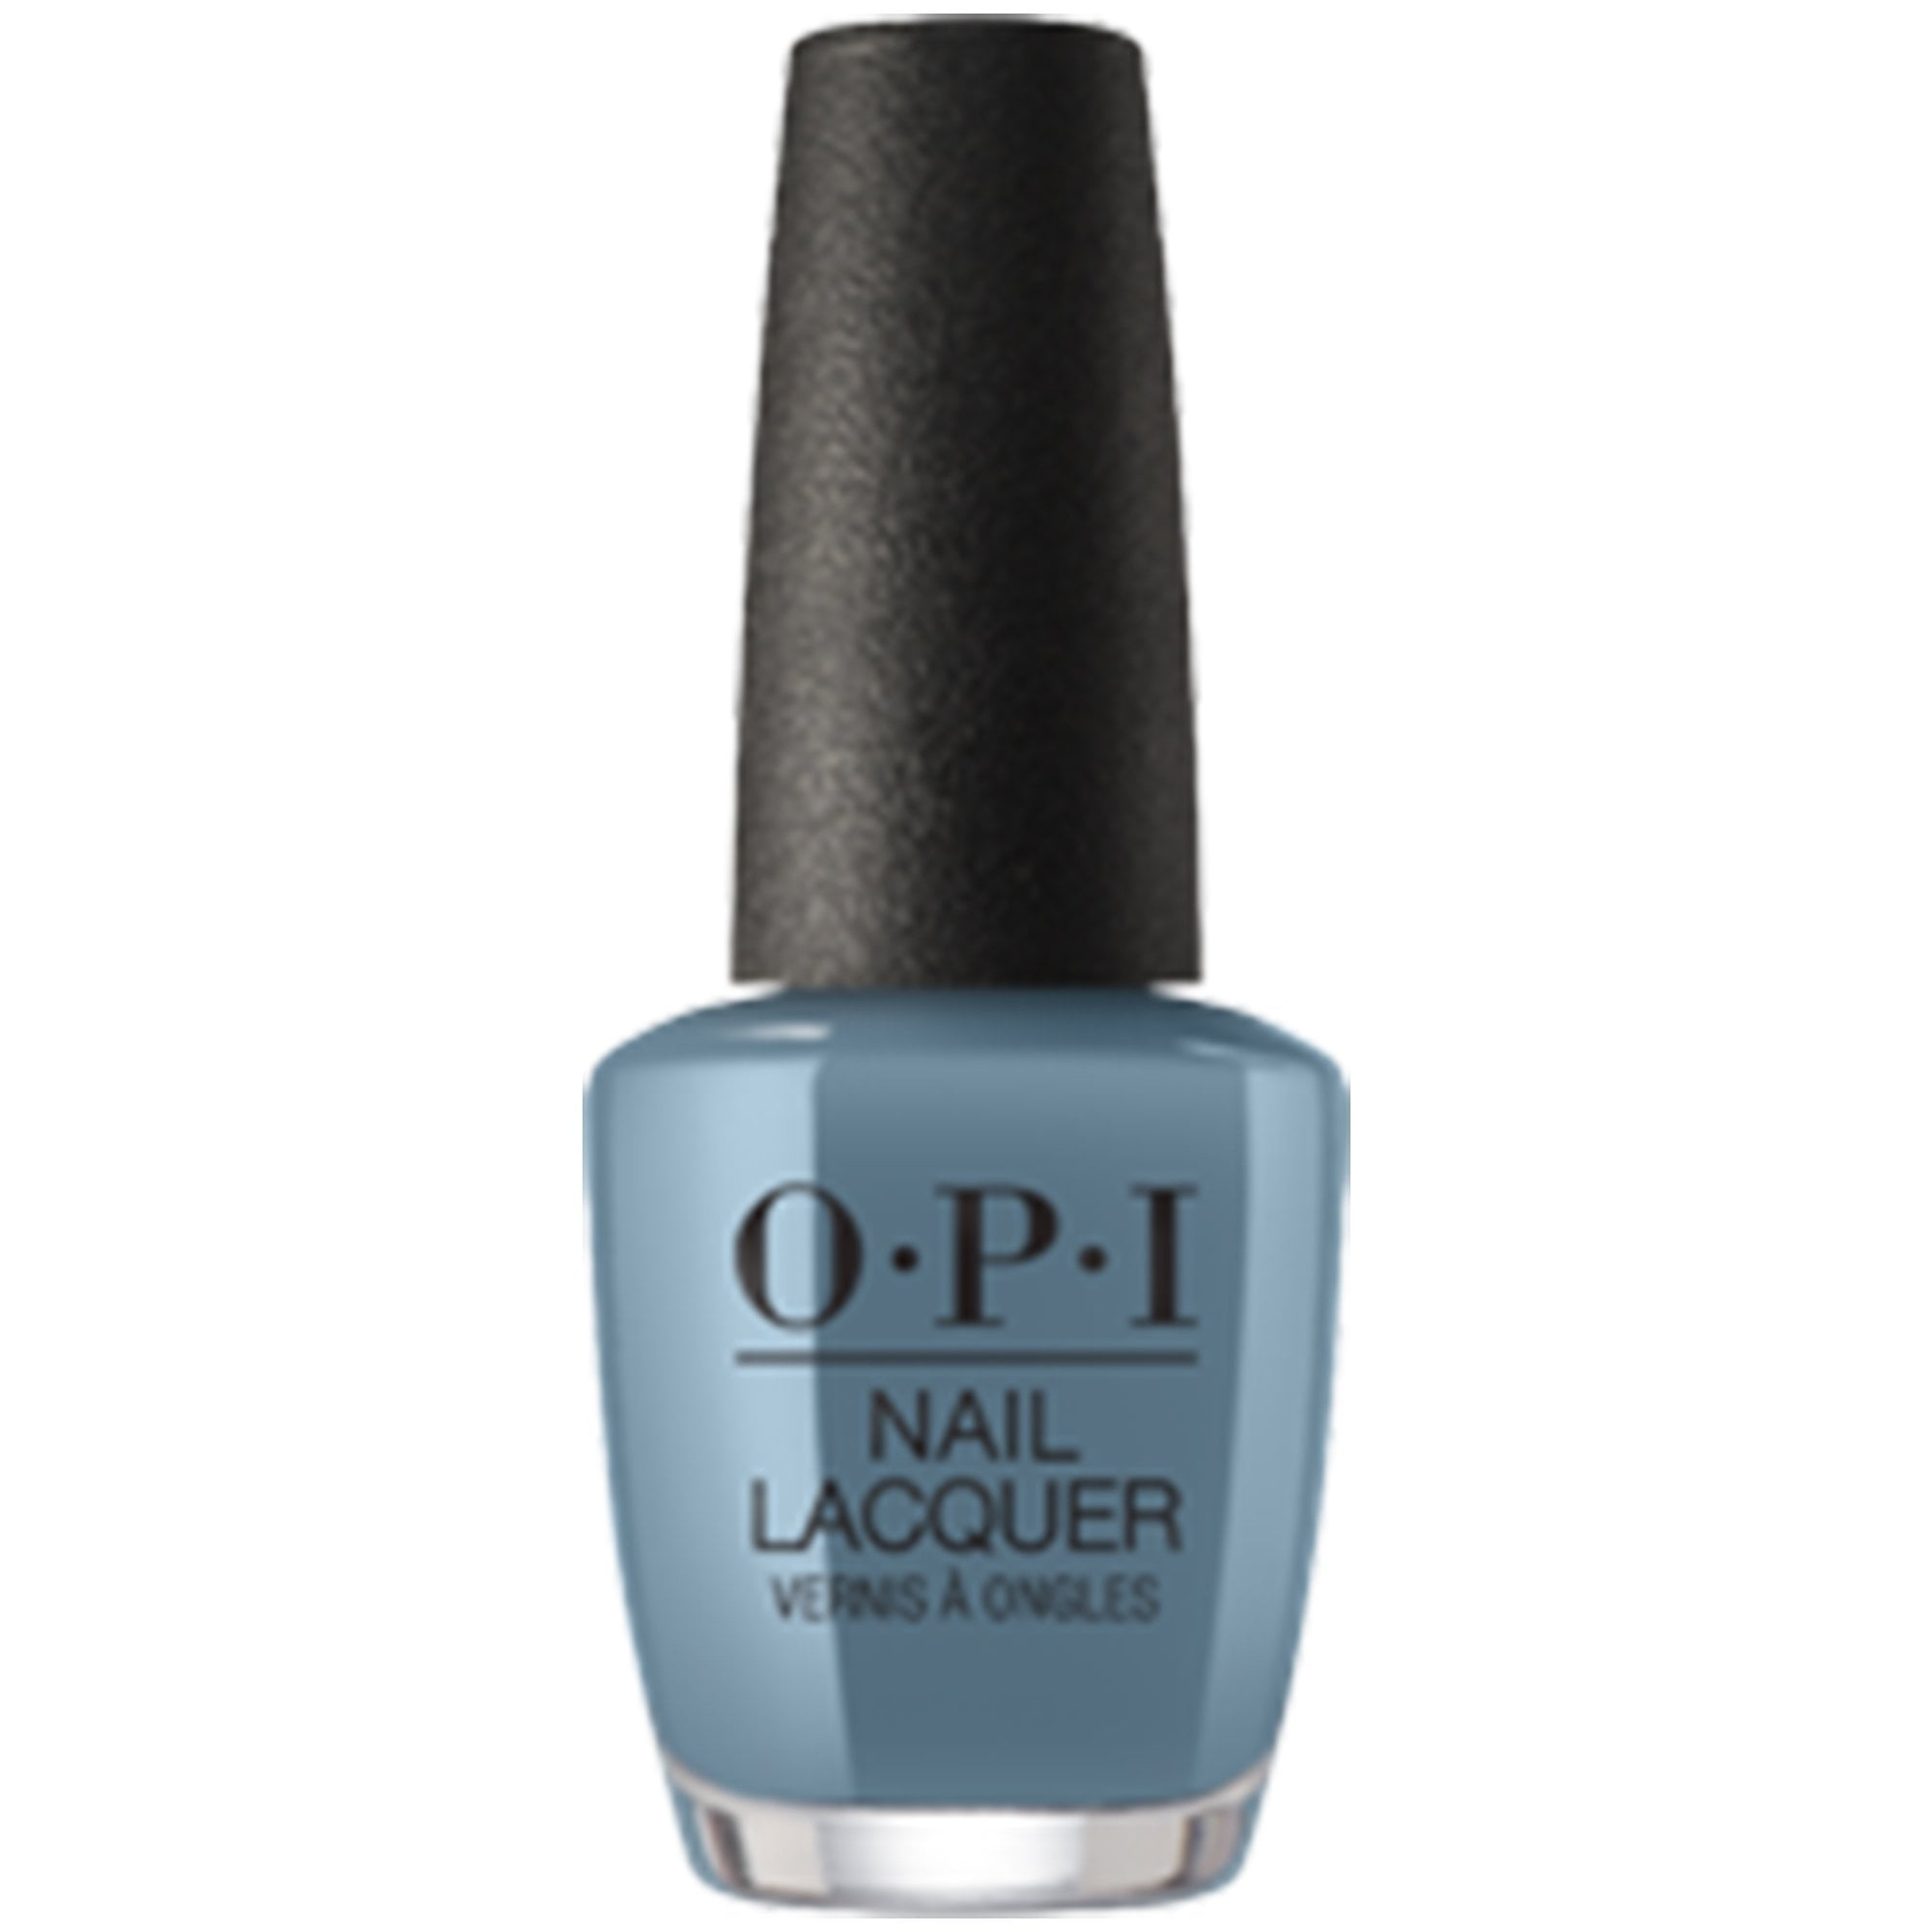 Alpaca My Bags-OPI Nail Lacquer-UK-Wholesaler-Supplier-queenofnailscouk